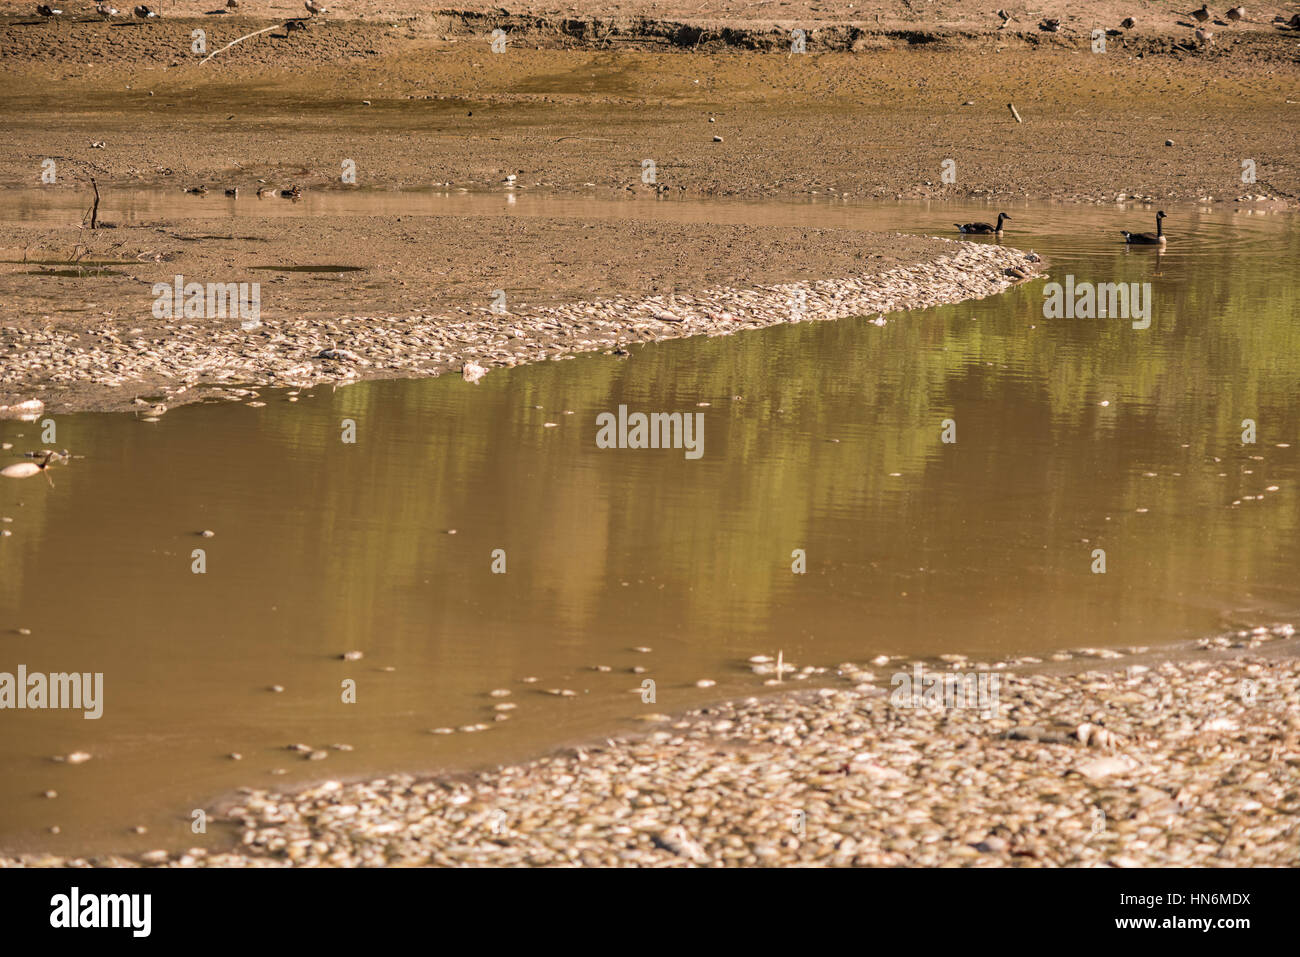 Dead fish in water with swimming geese after lake drainage and dredging at Royal Lake Park in Fairfax, Virginia - Stock Image